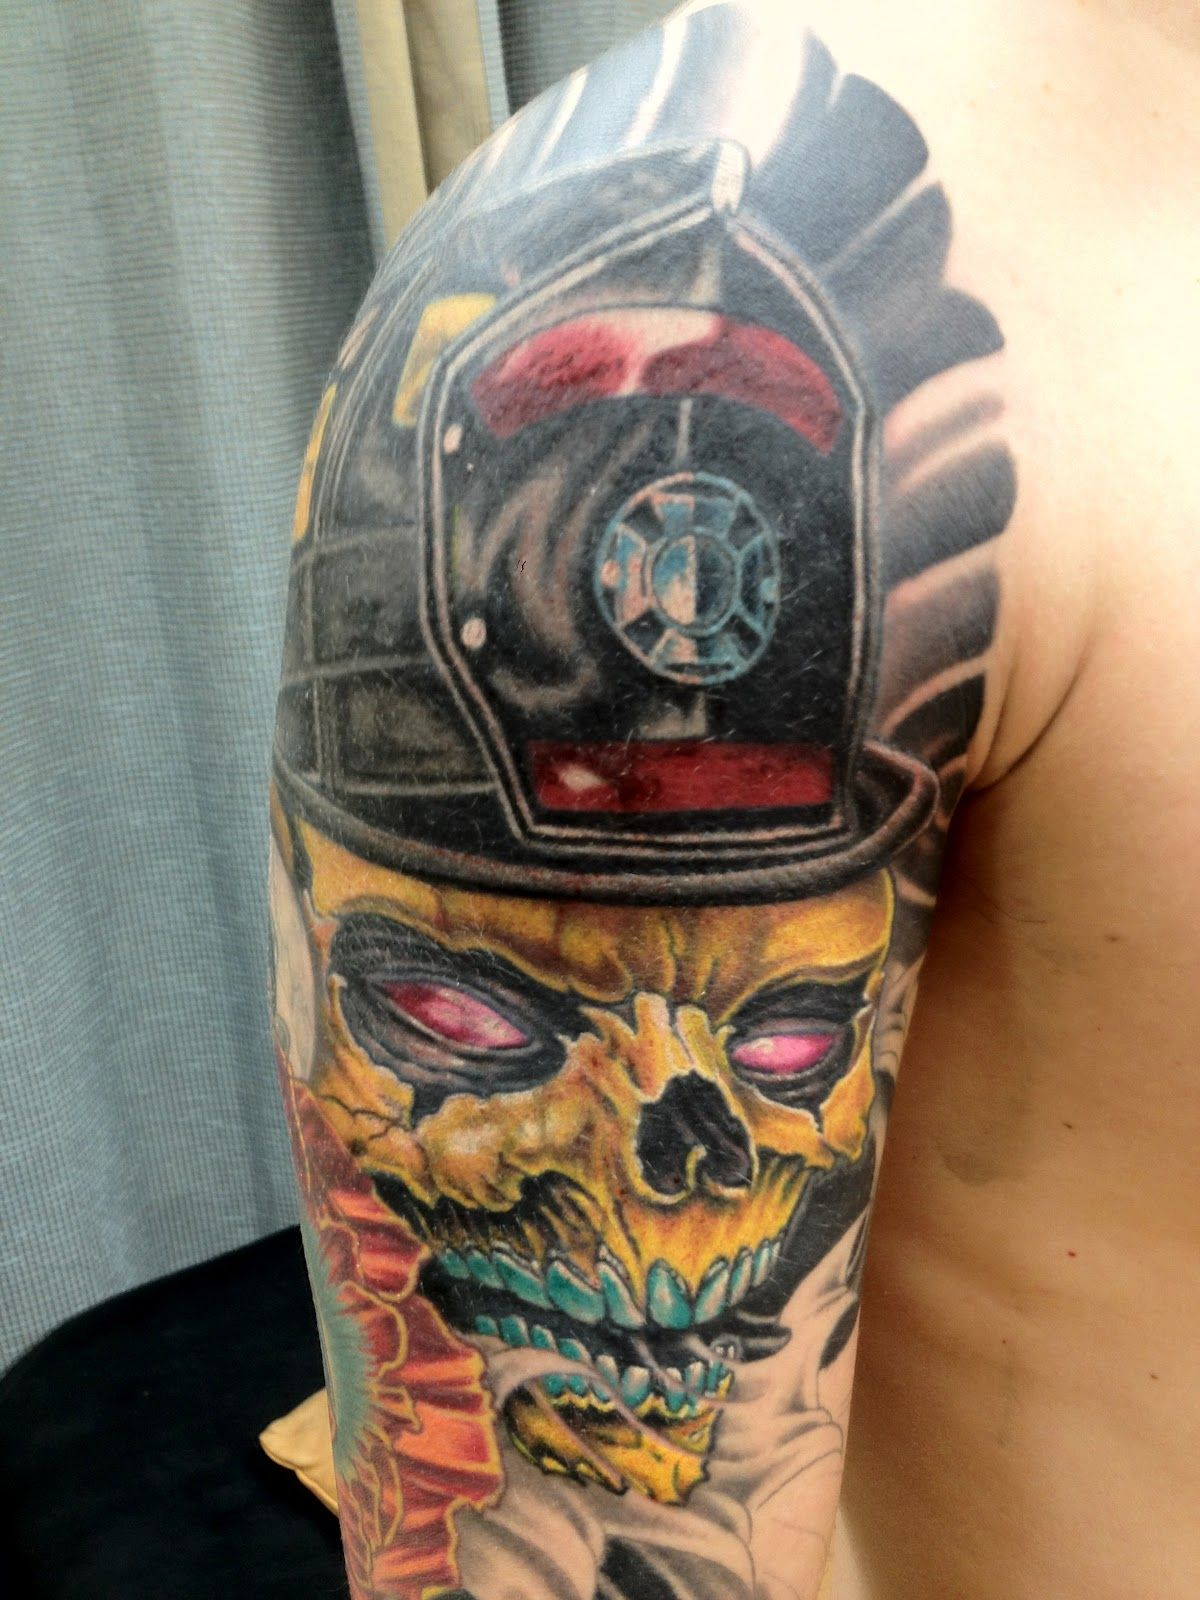 'Firefighter Skull' Tattoo (shoulder and arm) Shared by